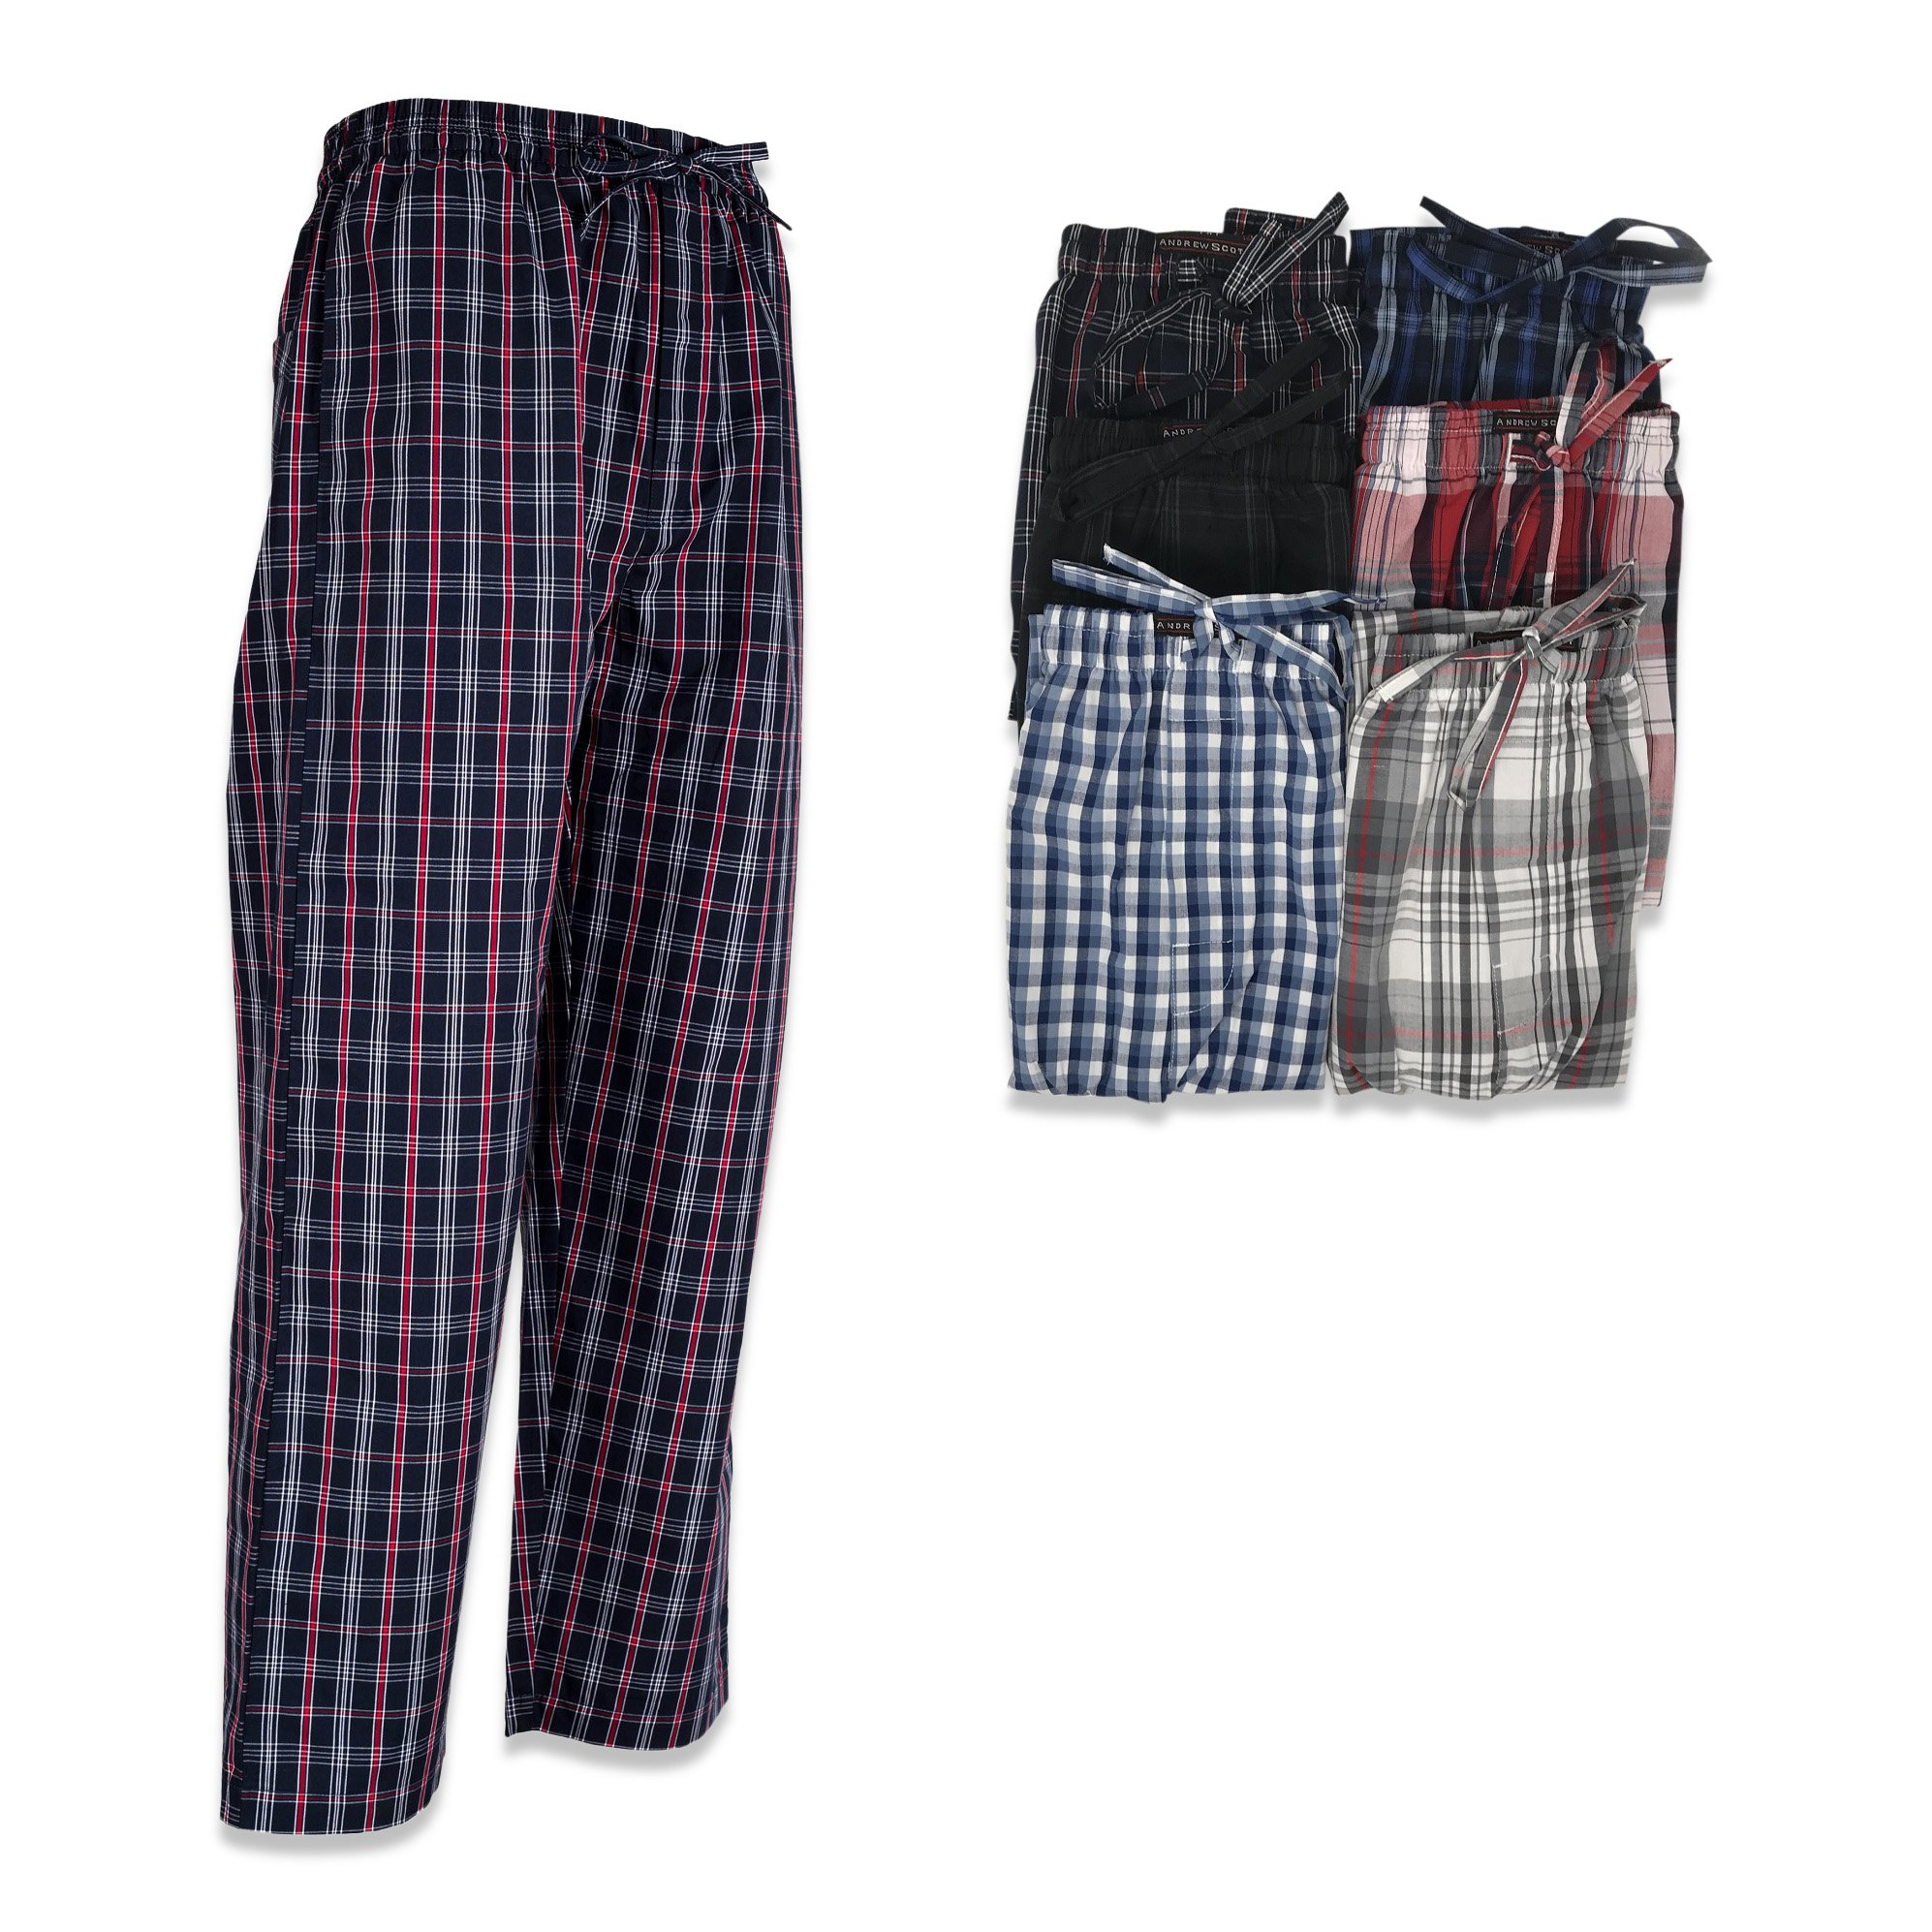 Andrew Scott Boys 6 Pack Woven Pant (XL 18-20, 6 Pack - Assorted Classic Plaids)